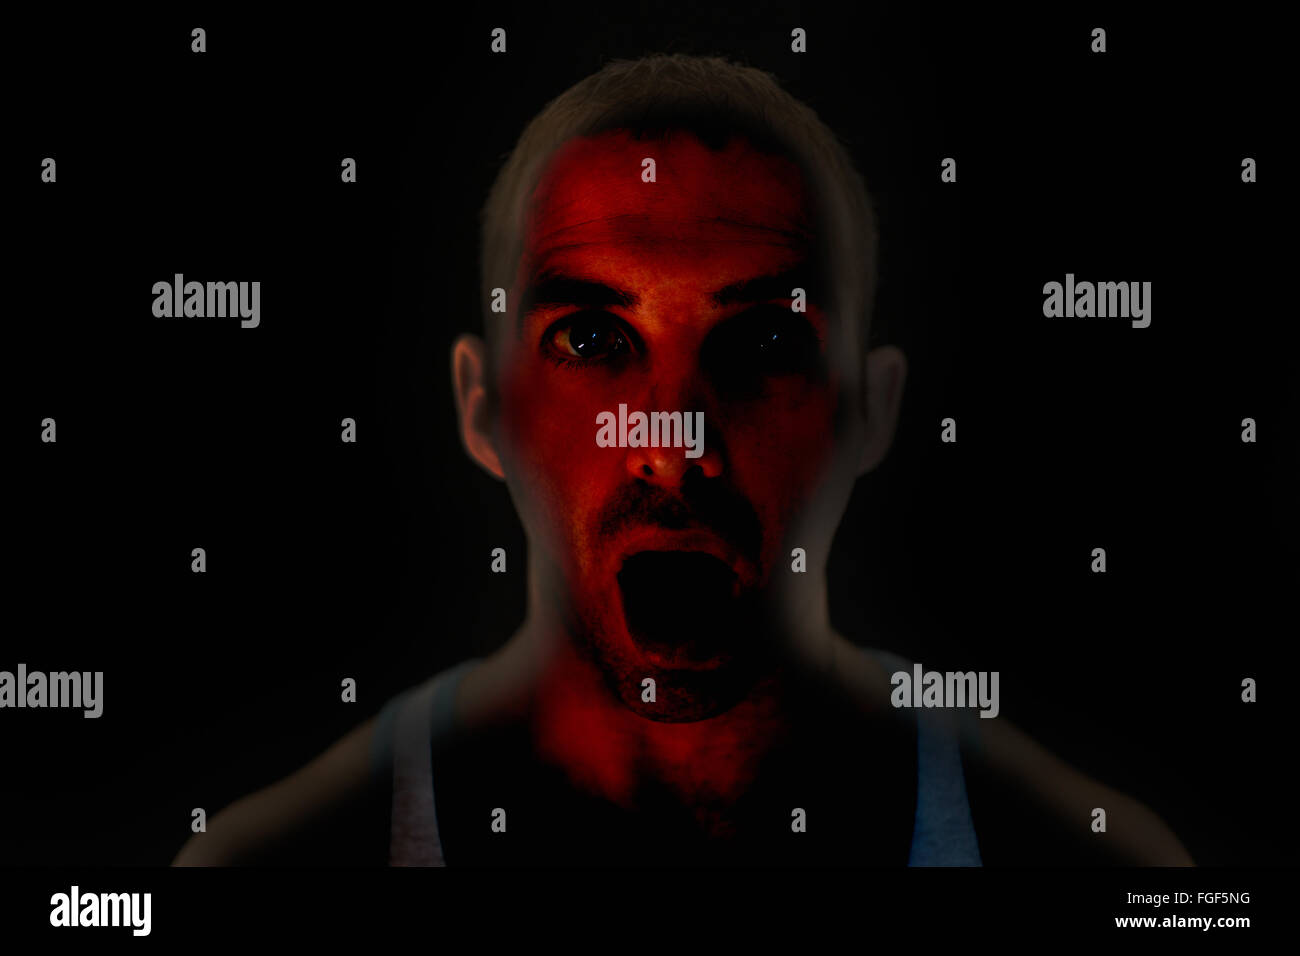 Portrait of a man with an expression of surprise and wonder - Stock Image